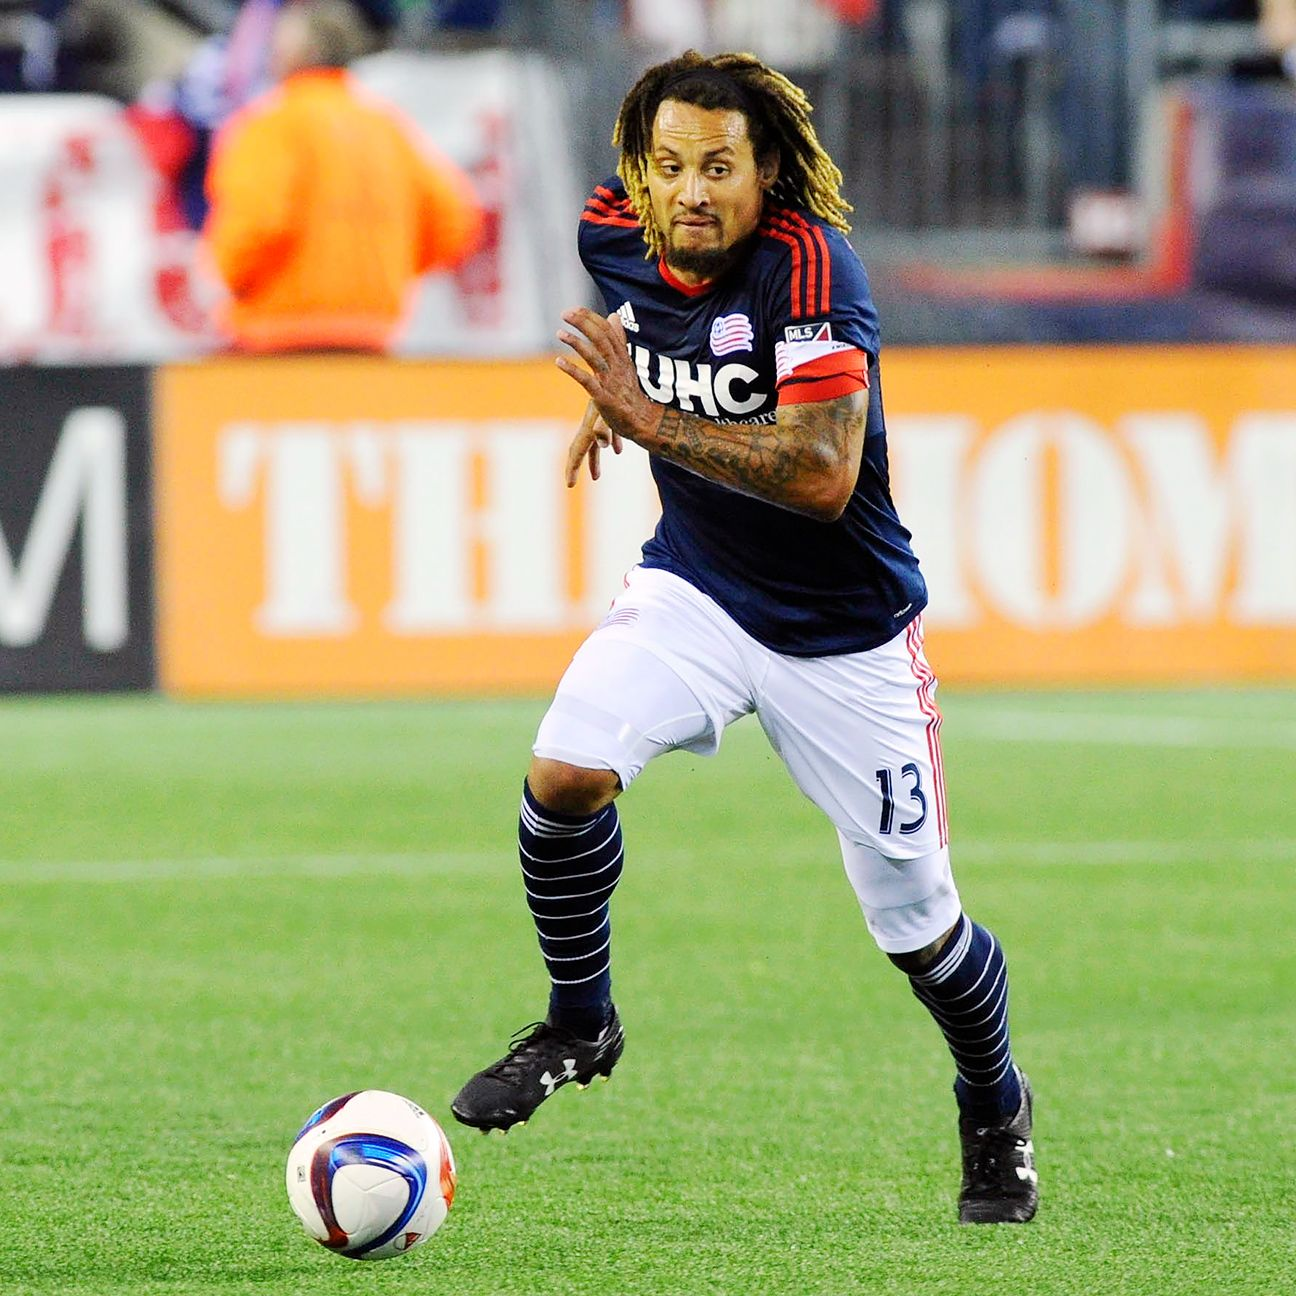 Jermaine Jones remains unsigned, though a potential return to the Revolution has not been completely ruled out.